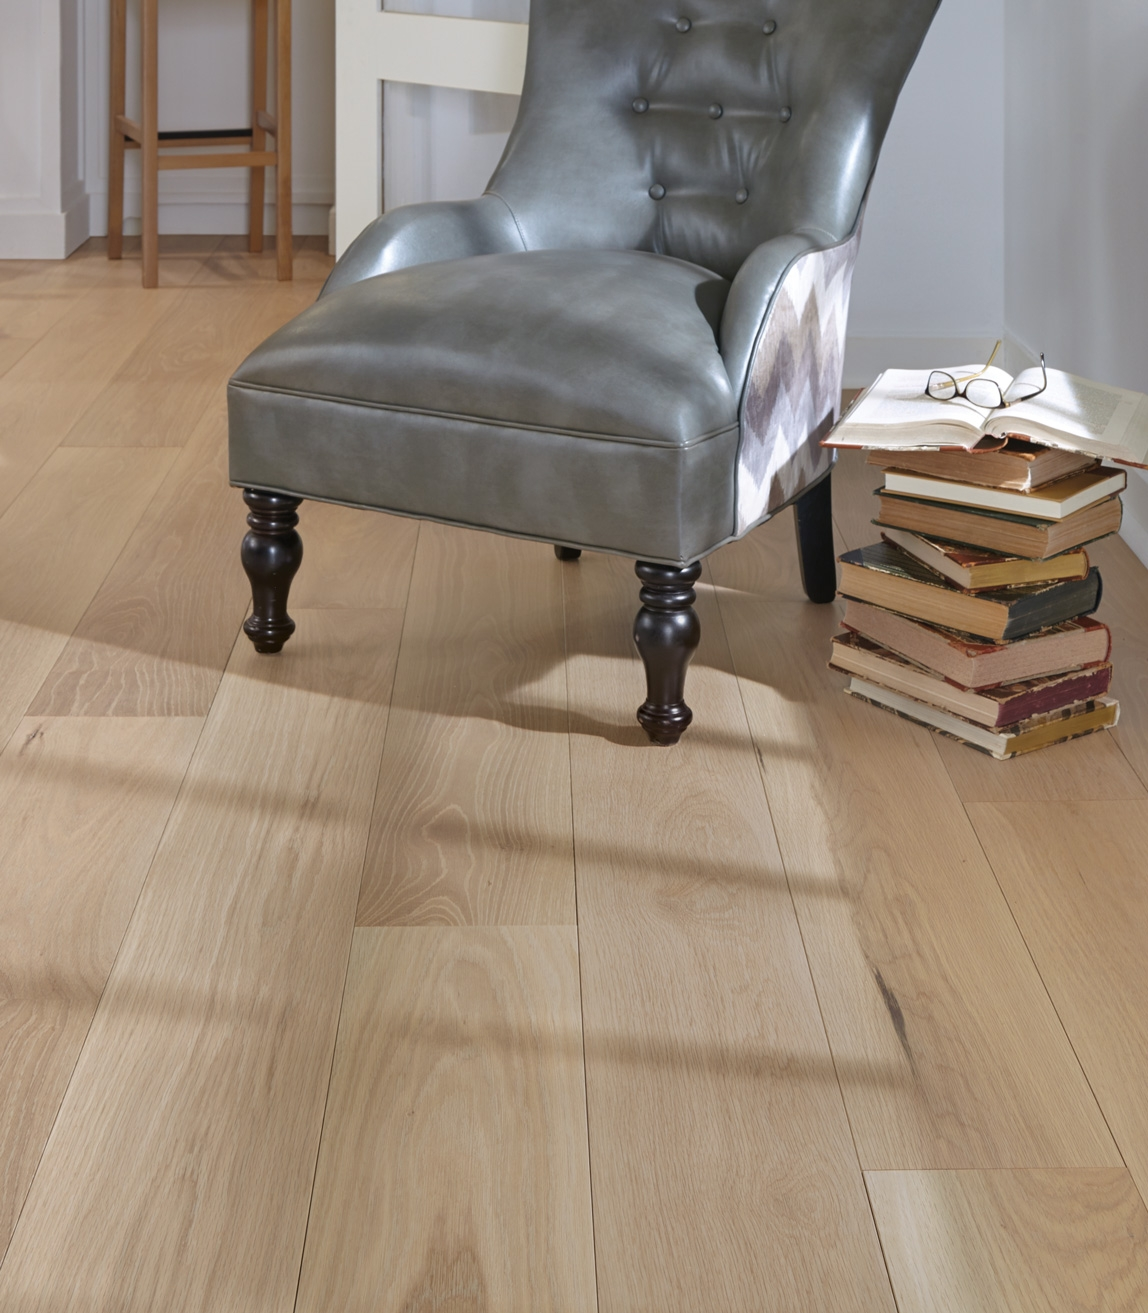 Durable Wood Floors Of New England